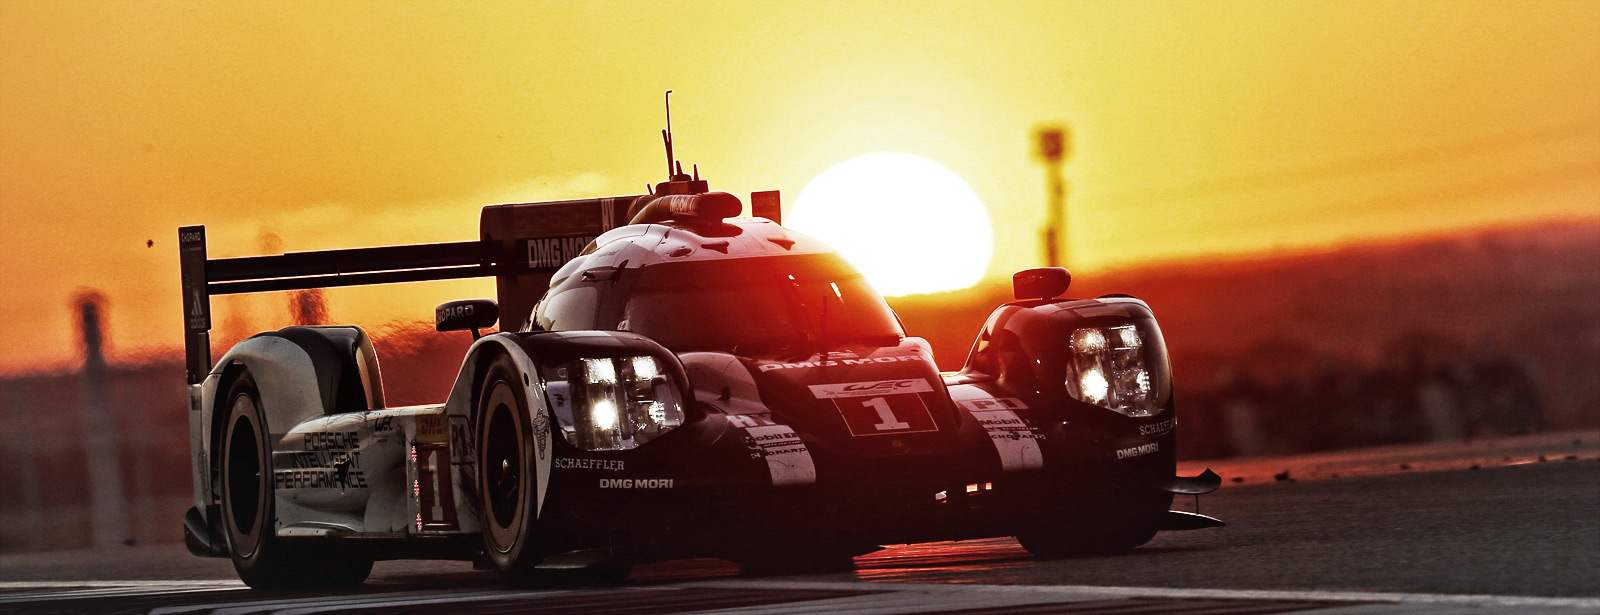 Porsche - 919 Hybrid wins the 6h of Austin. - FIA World Endurance Championship.